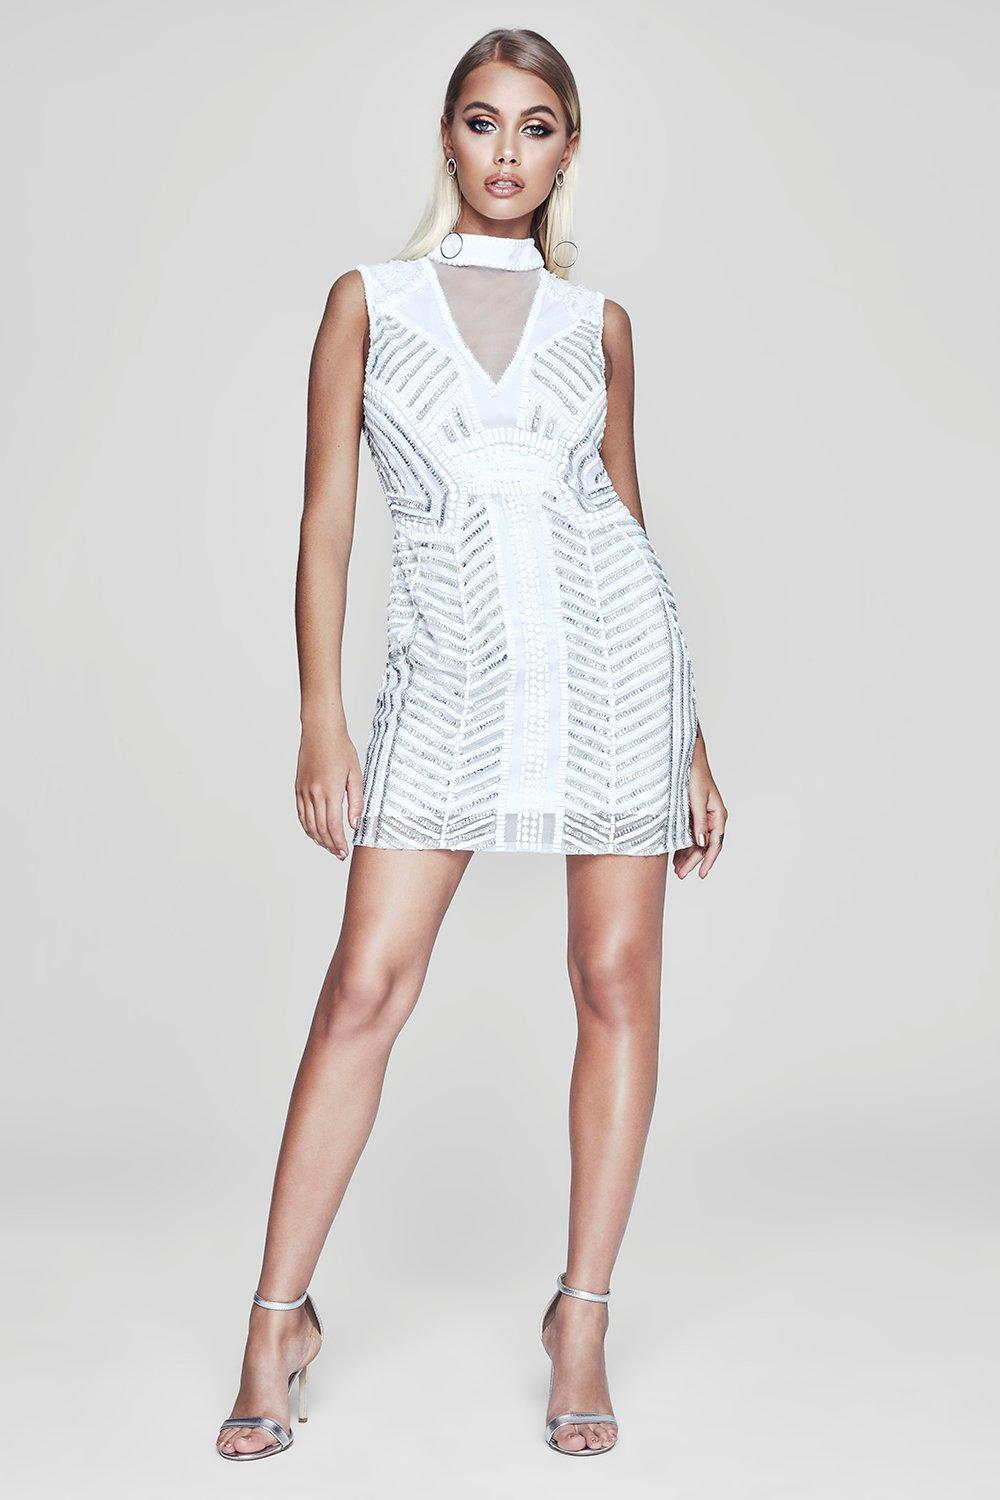 Boohoo Premium Sheer Back Embellished Mini Dress in White - Lyst 120083709